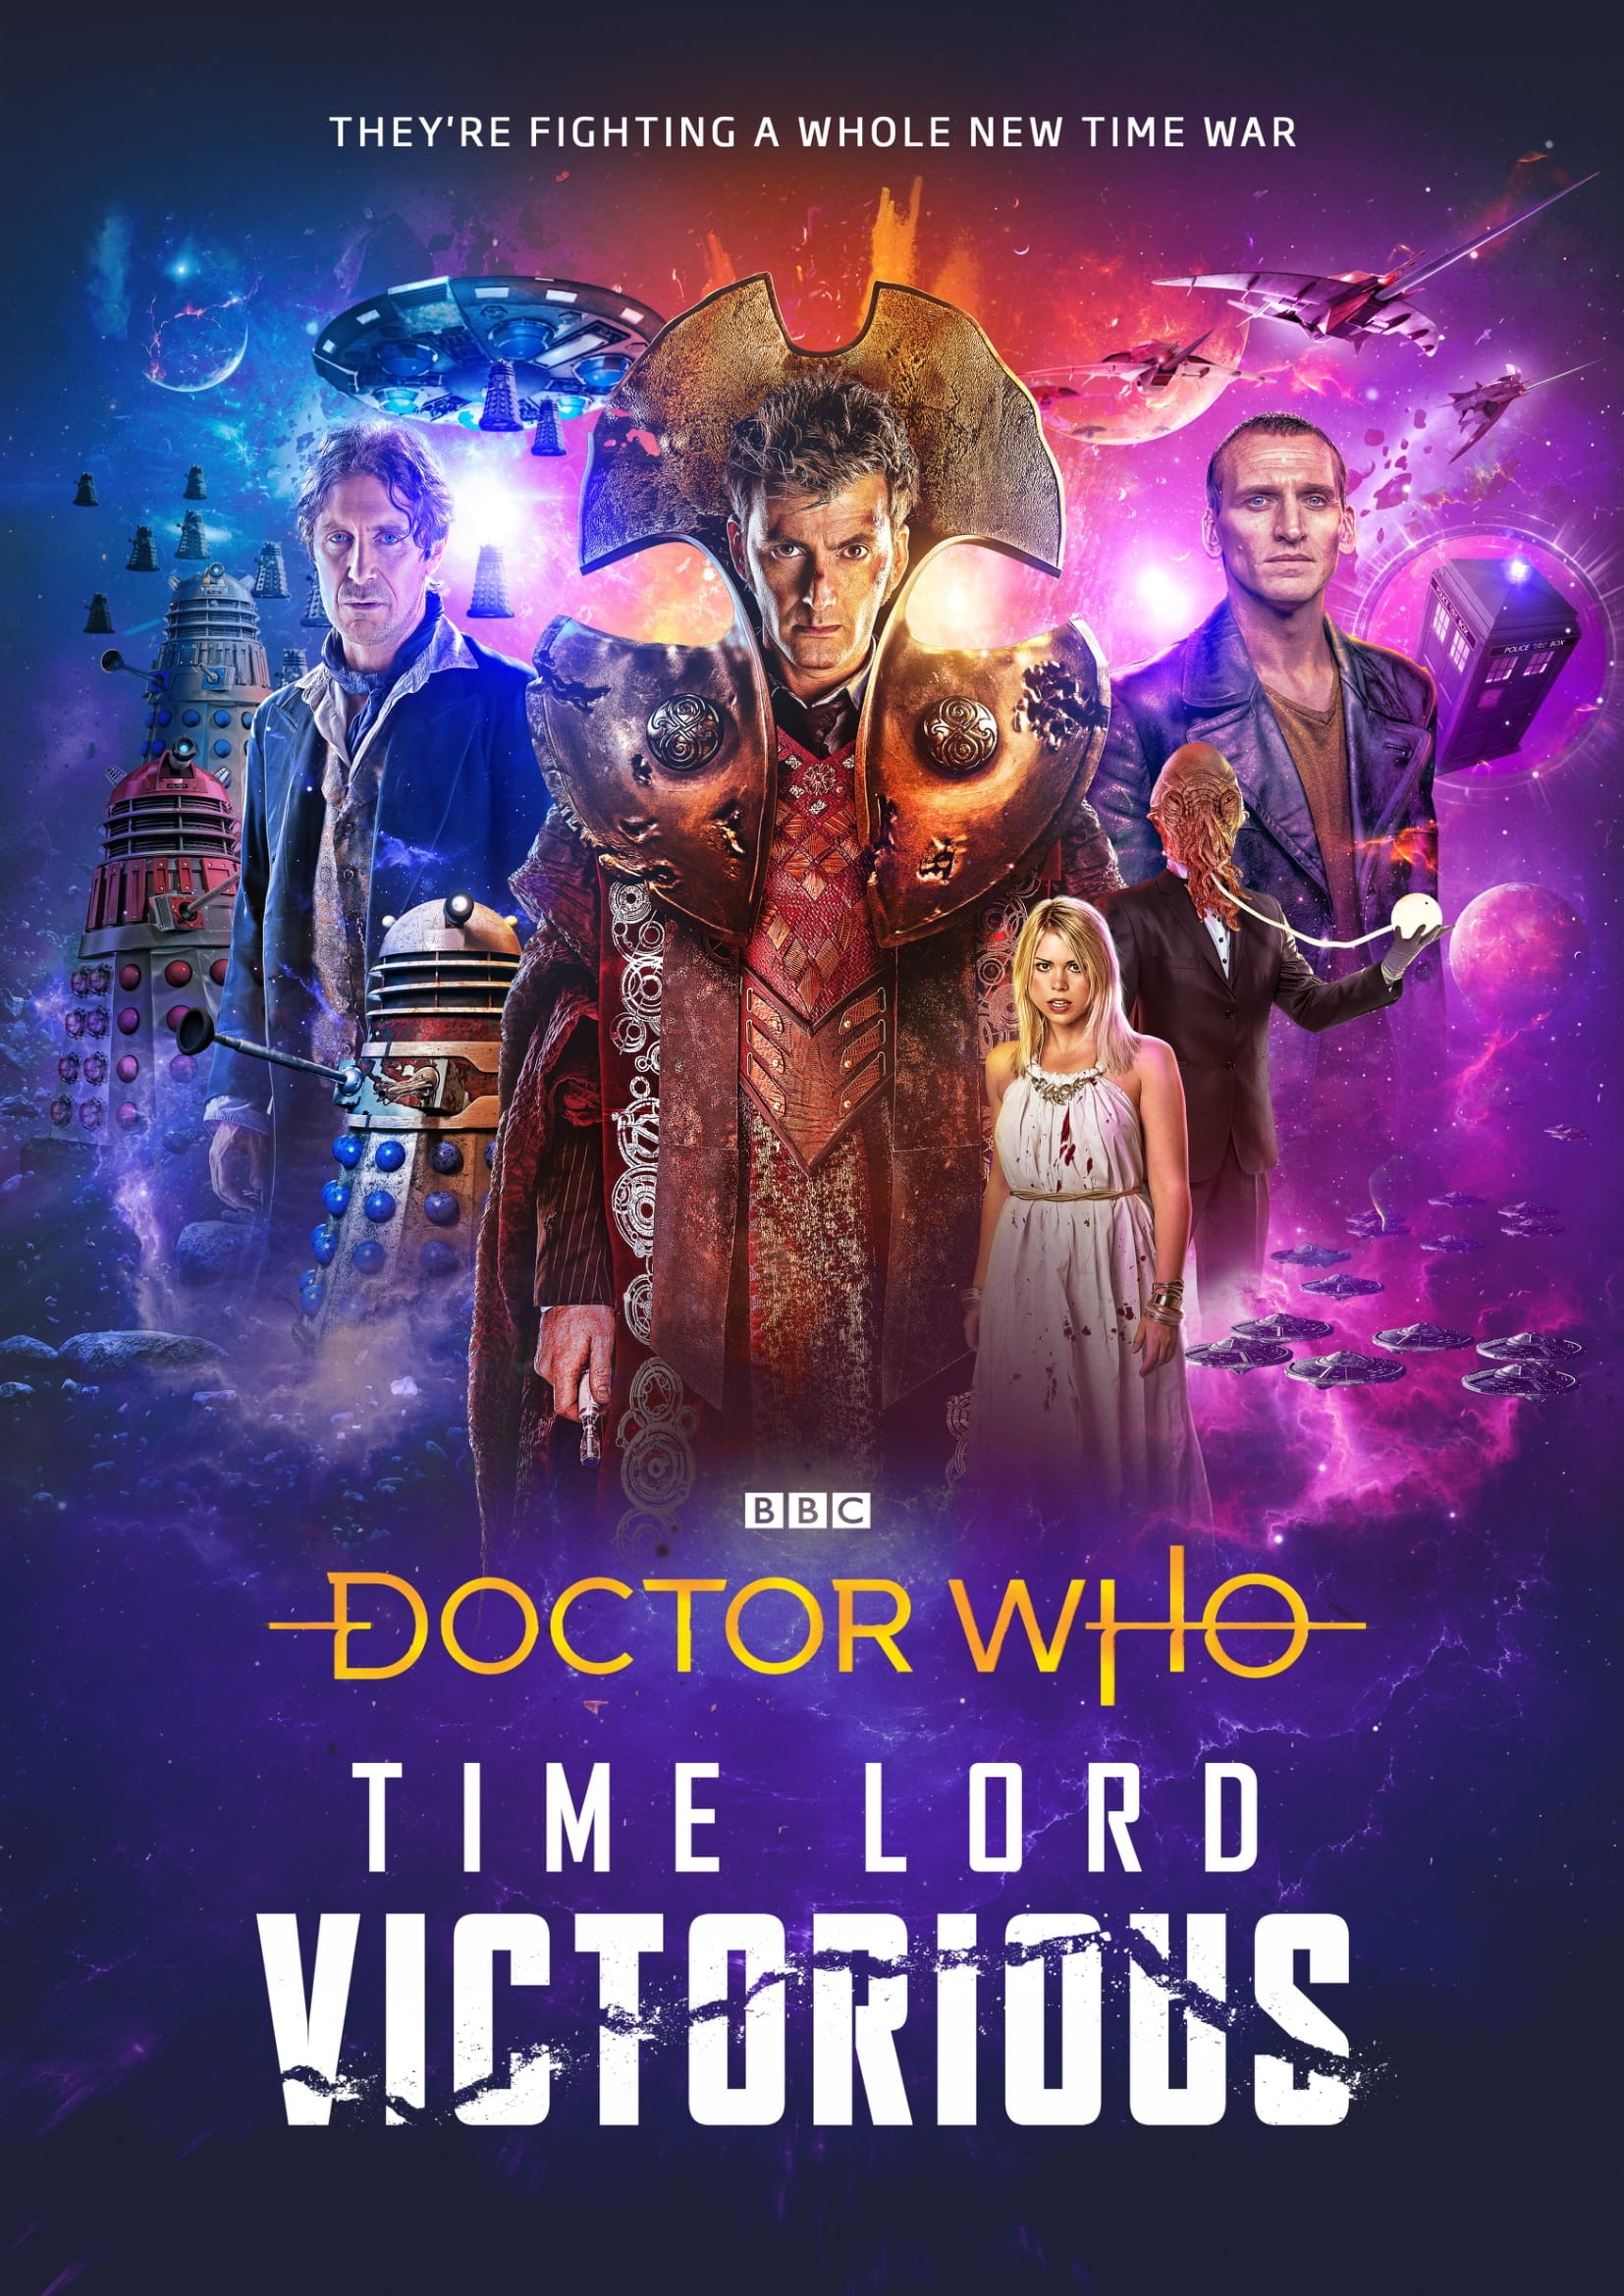 A Handy Timeline for the Doctor Who Multi-Platform Event, Time Lord Victorious